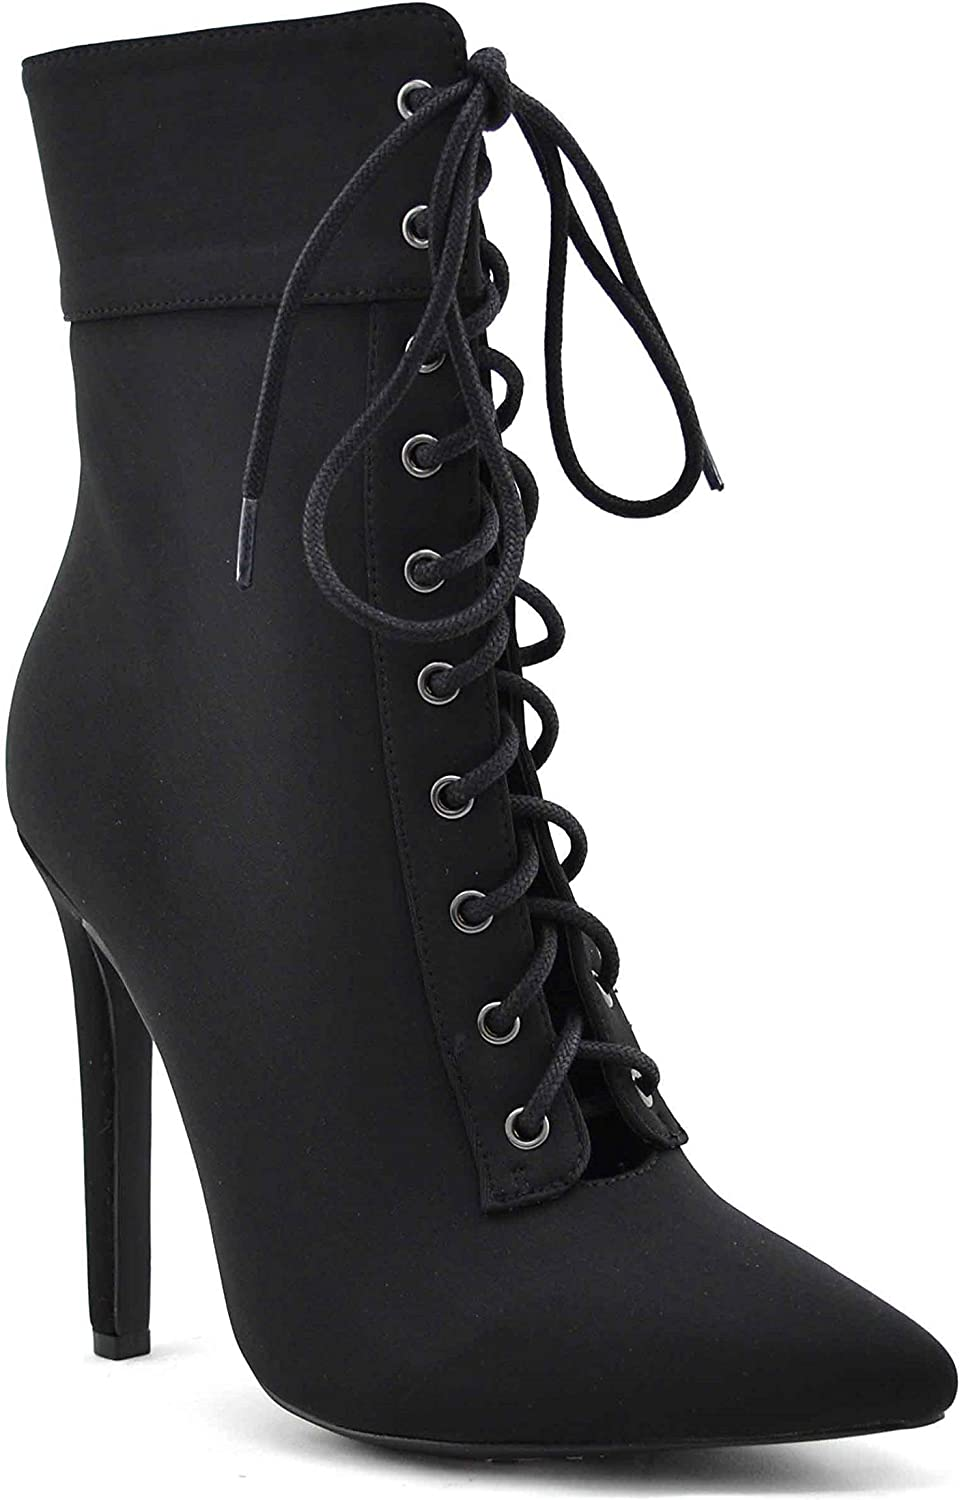 Women's Pointed Toe High Heel Ankle Booties | Lace-Up Tie | Side Zipper | Pencil Stiletto Heel Shoe Boots